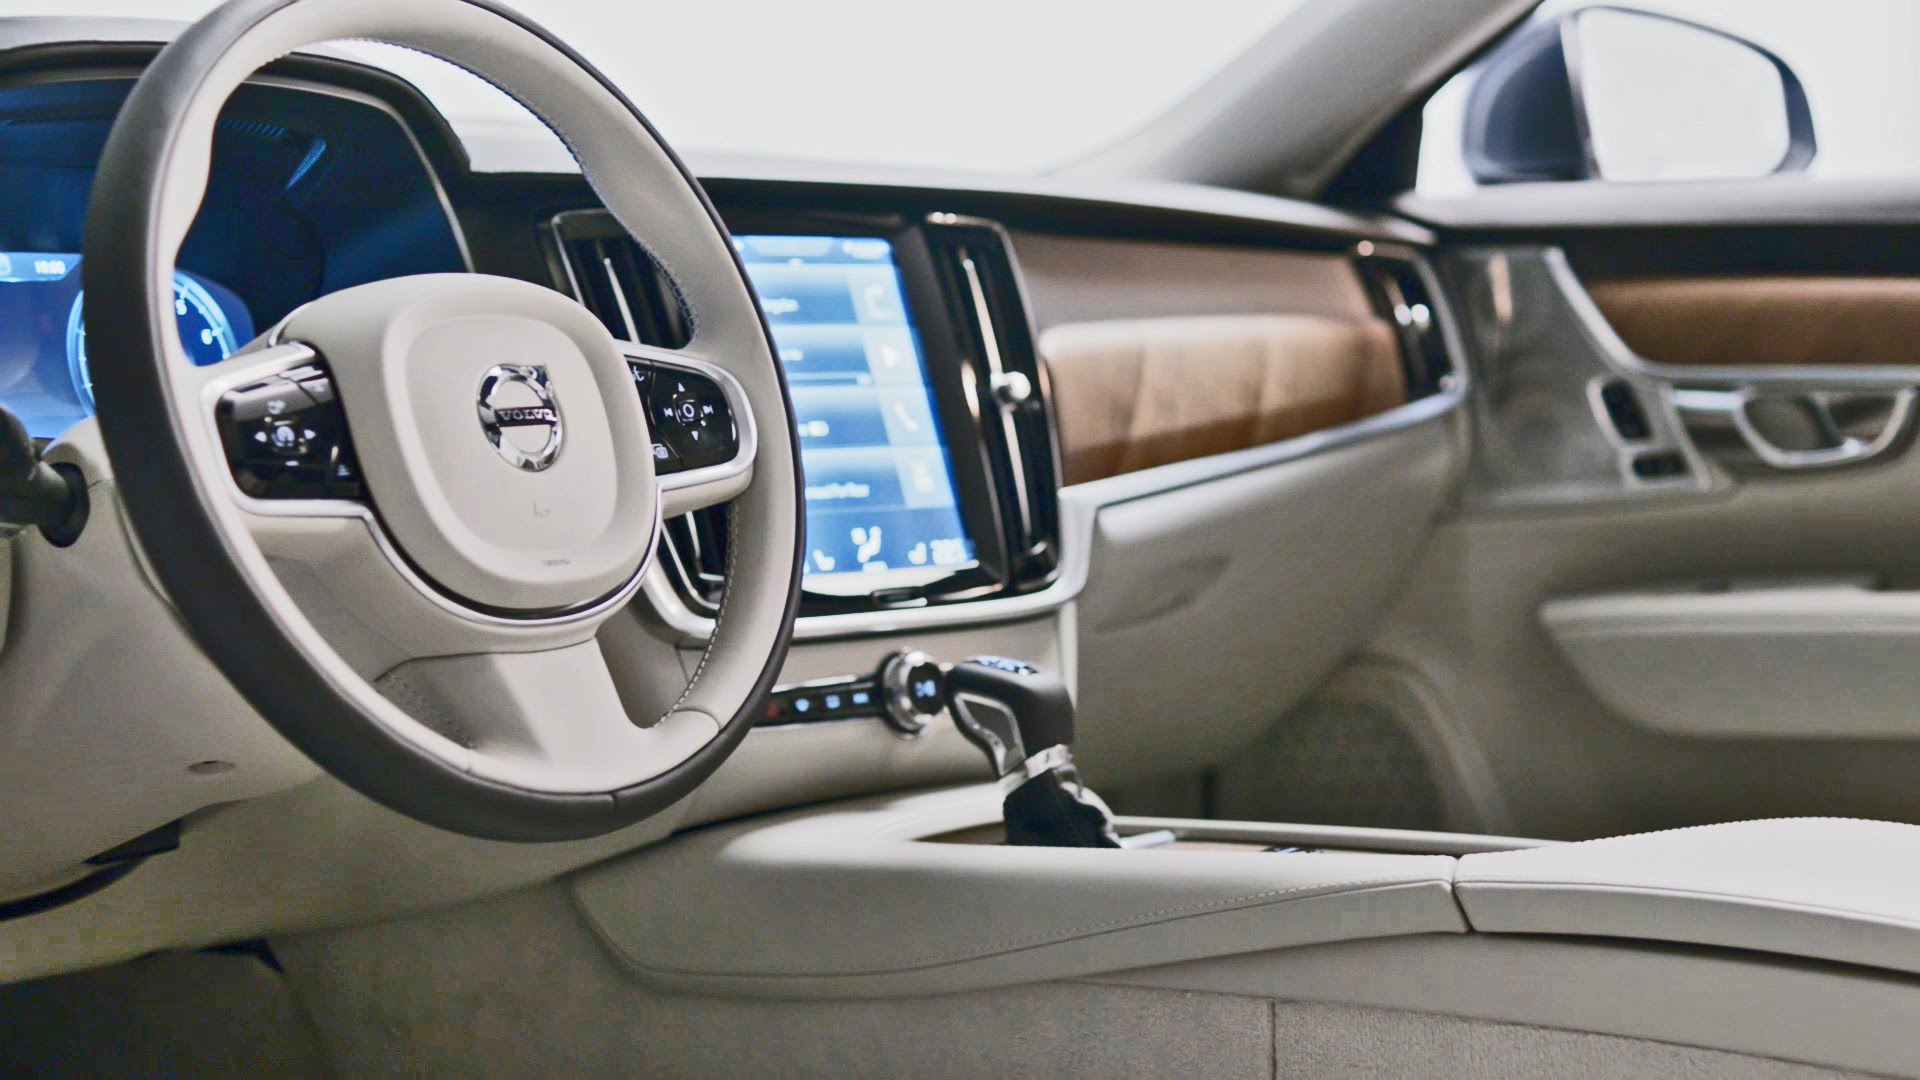 awesome-design-of-the-white-seats-ideas-with-white-steering-wheel-added-with-brown-and-white-dash-as-the-volvo-s90-2016-interior